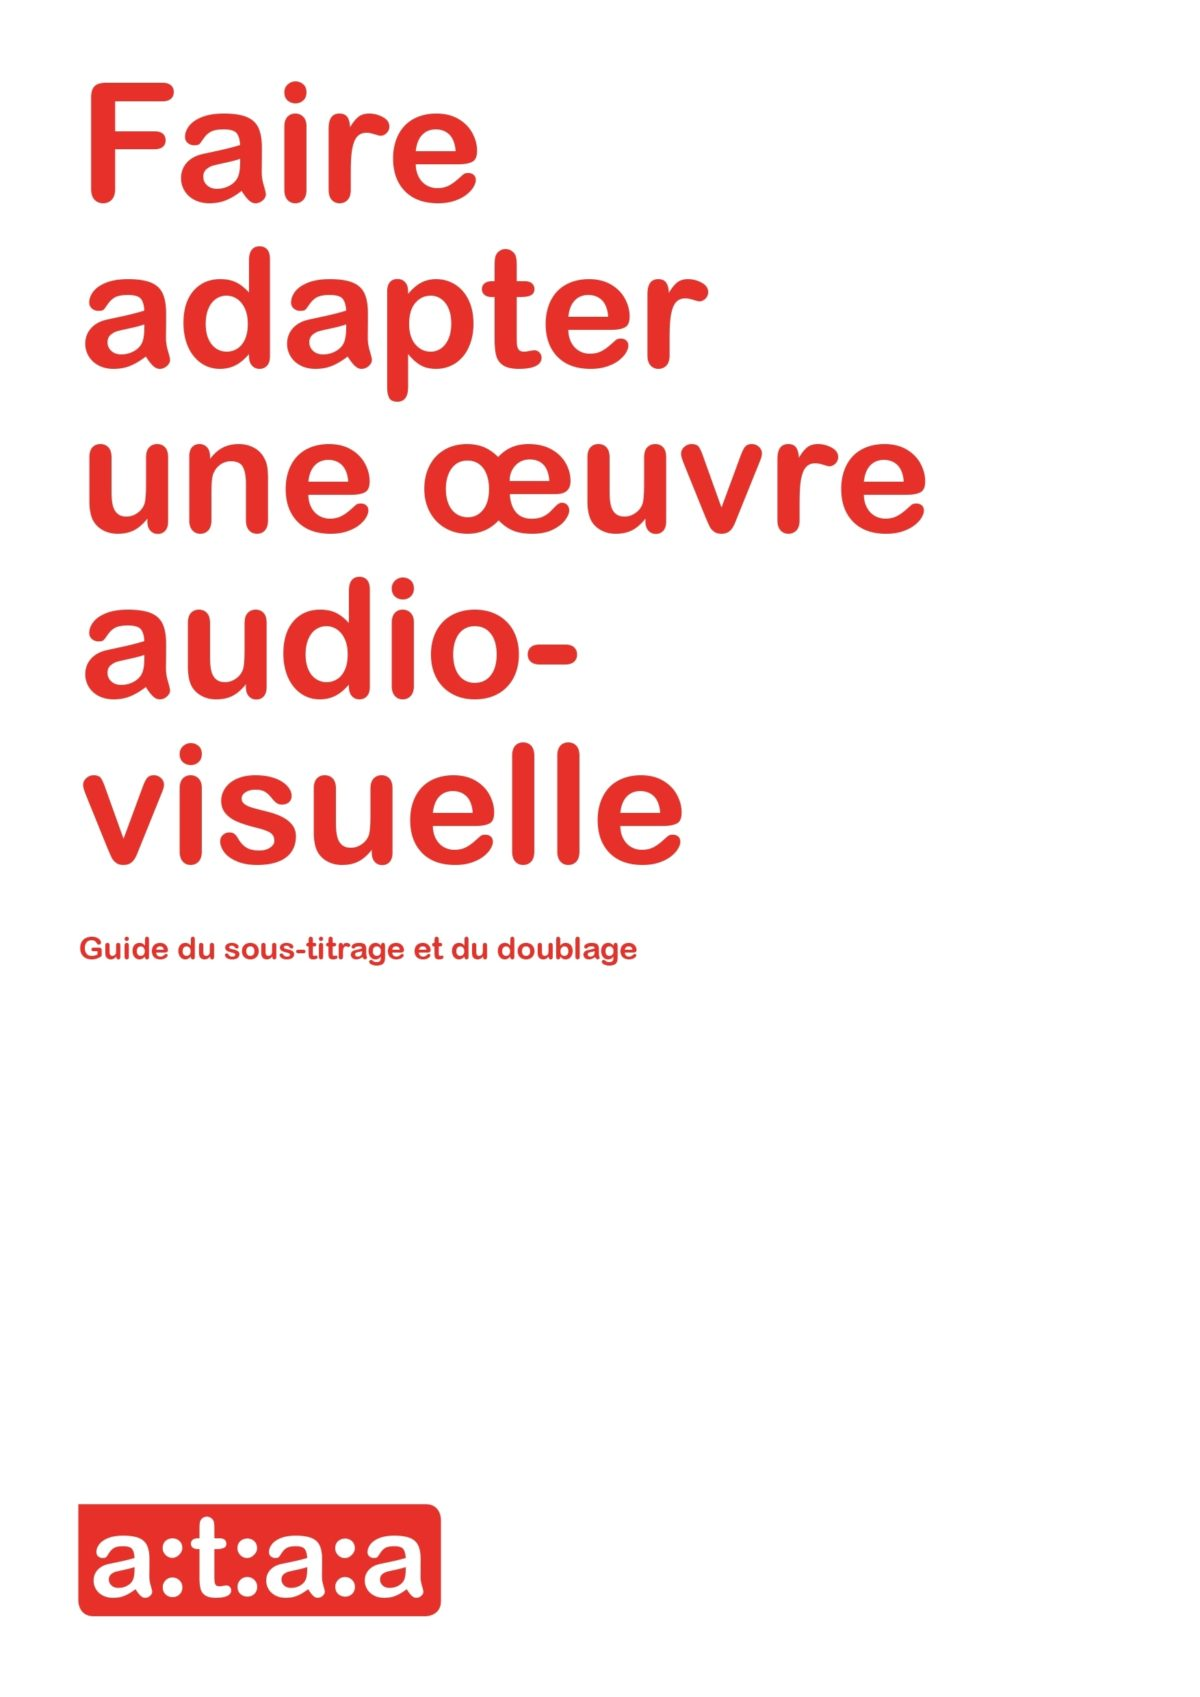 Brochure de la traduction audiovisuelle